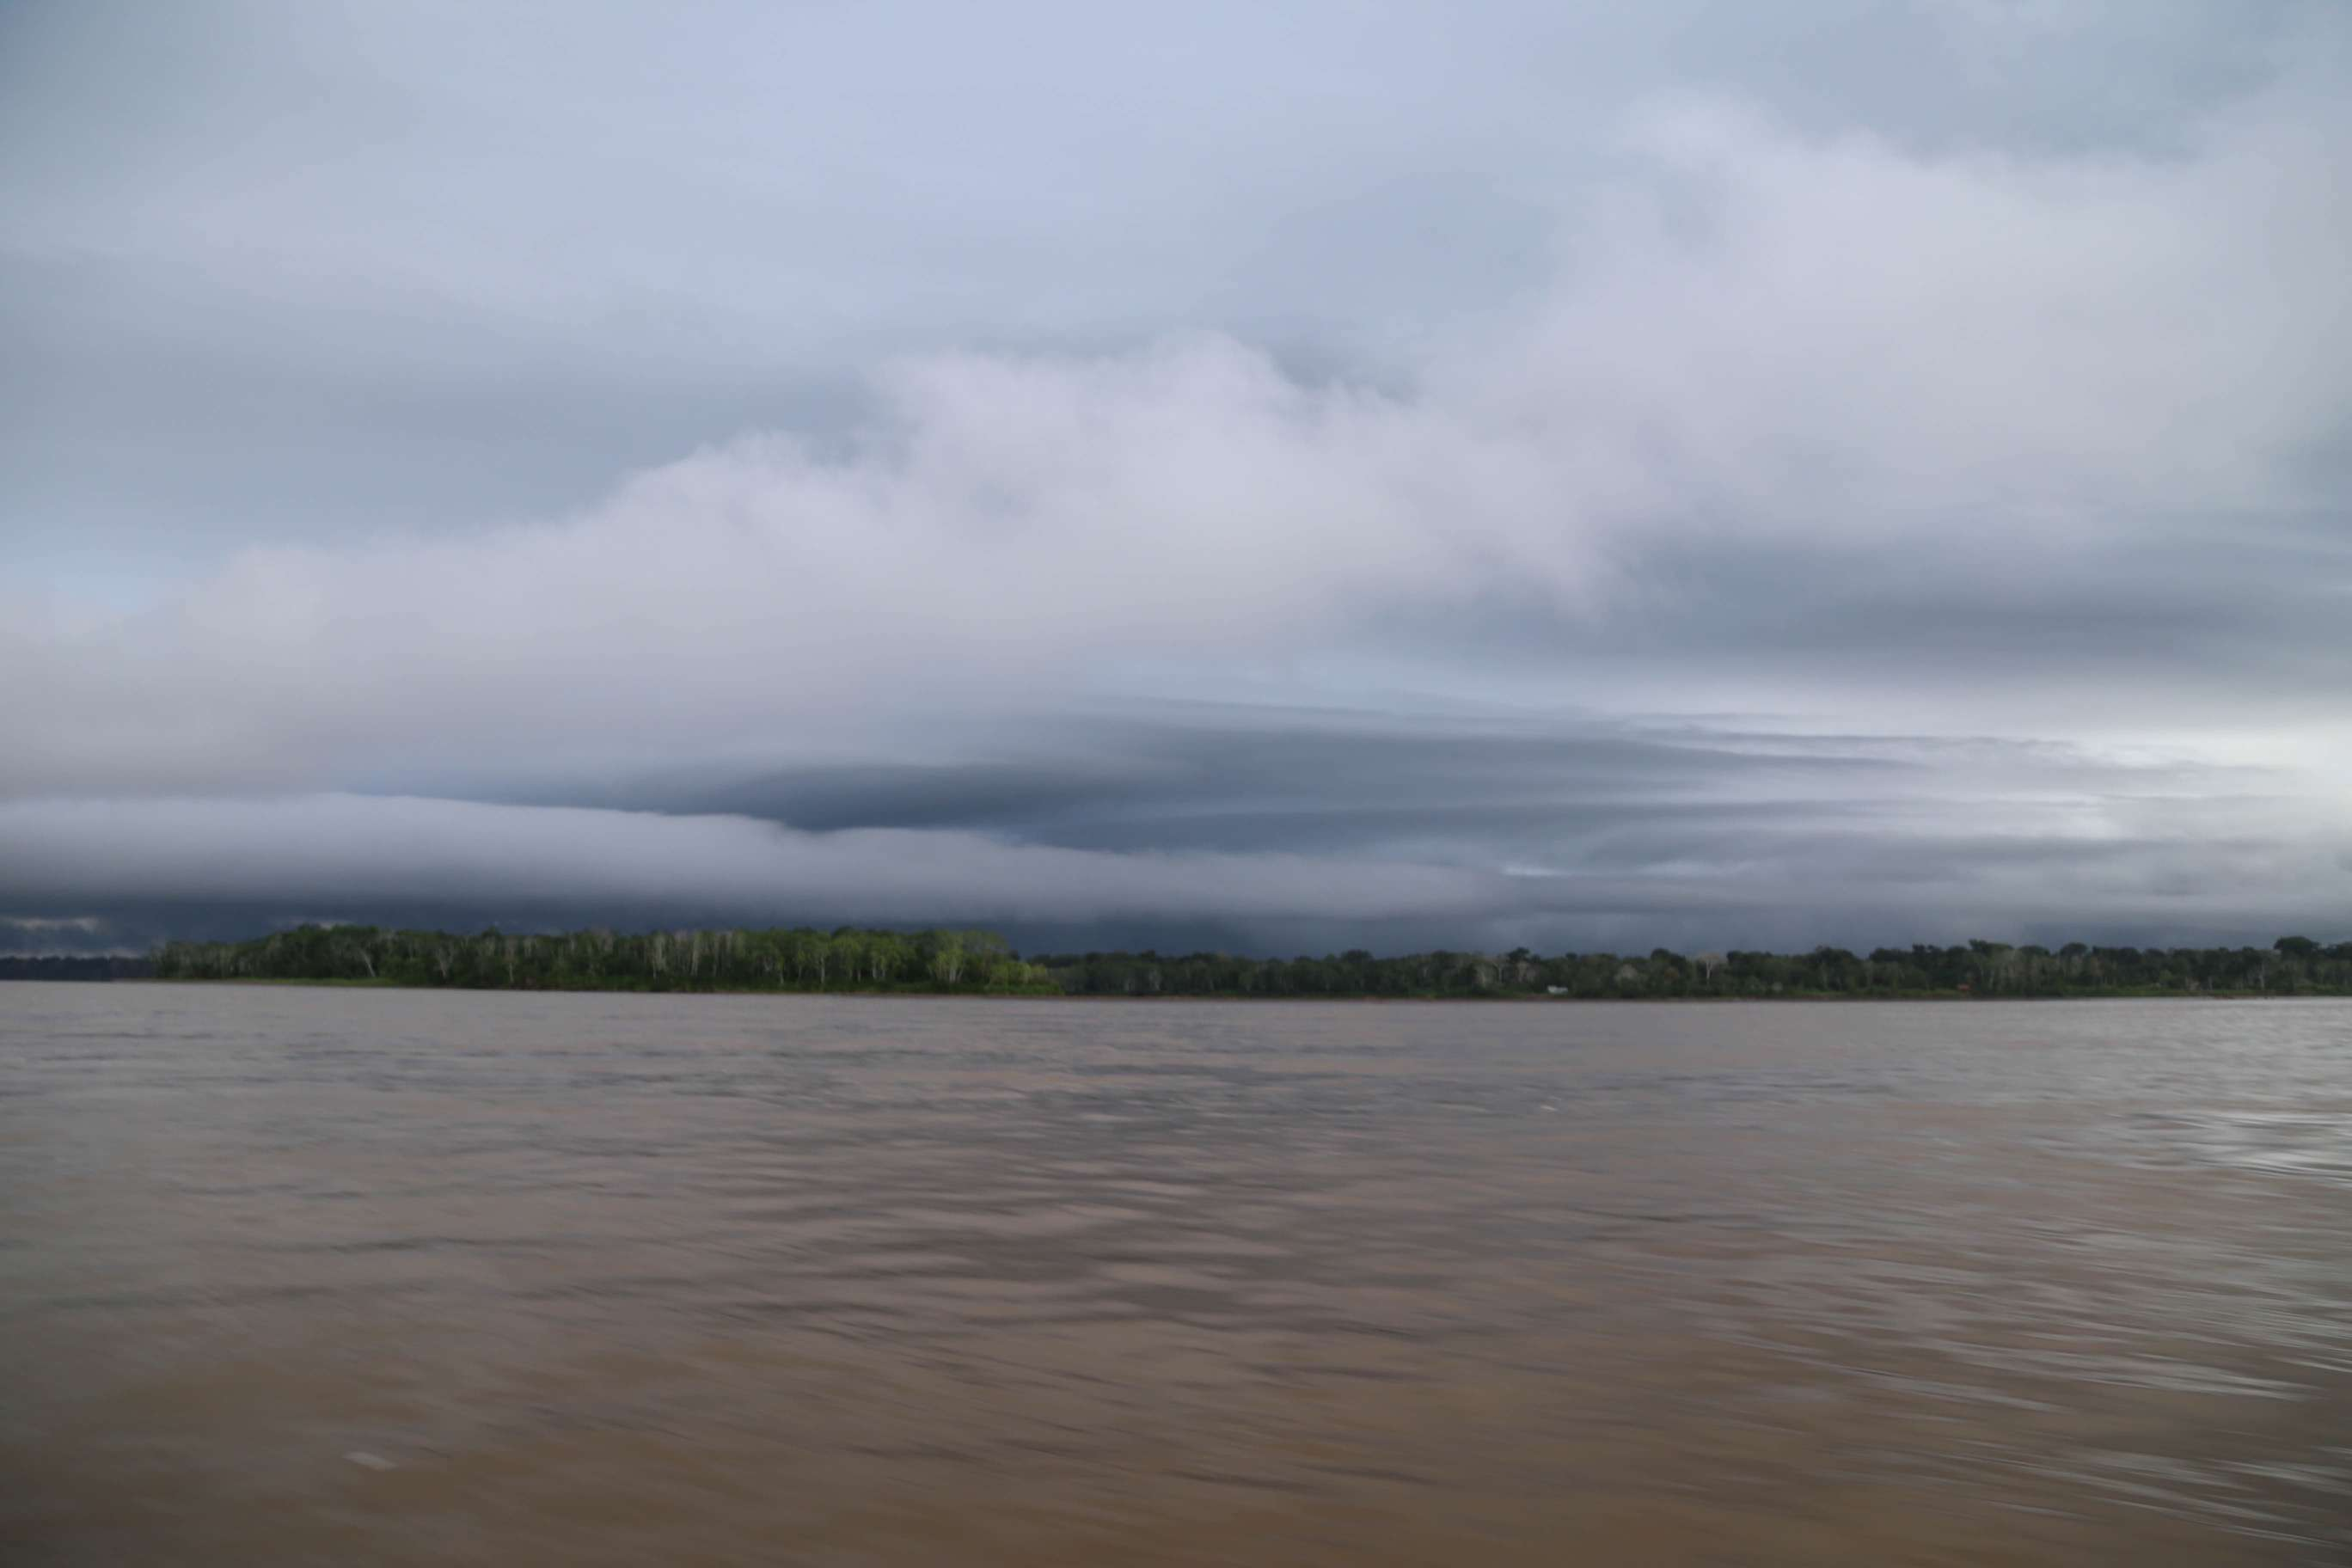 At least 80 inches of rain falls in the Amazon basin and in some areas over 400 inches inundates the land and river.